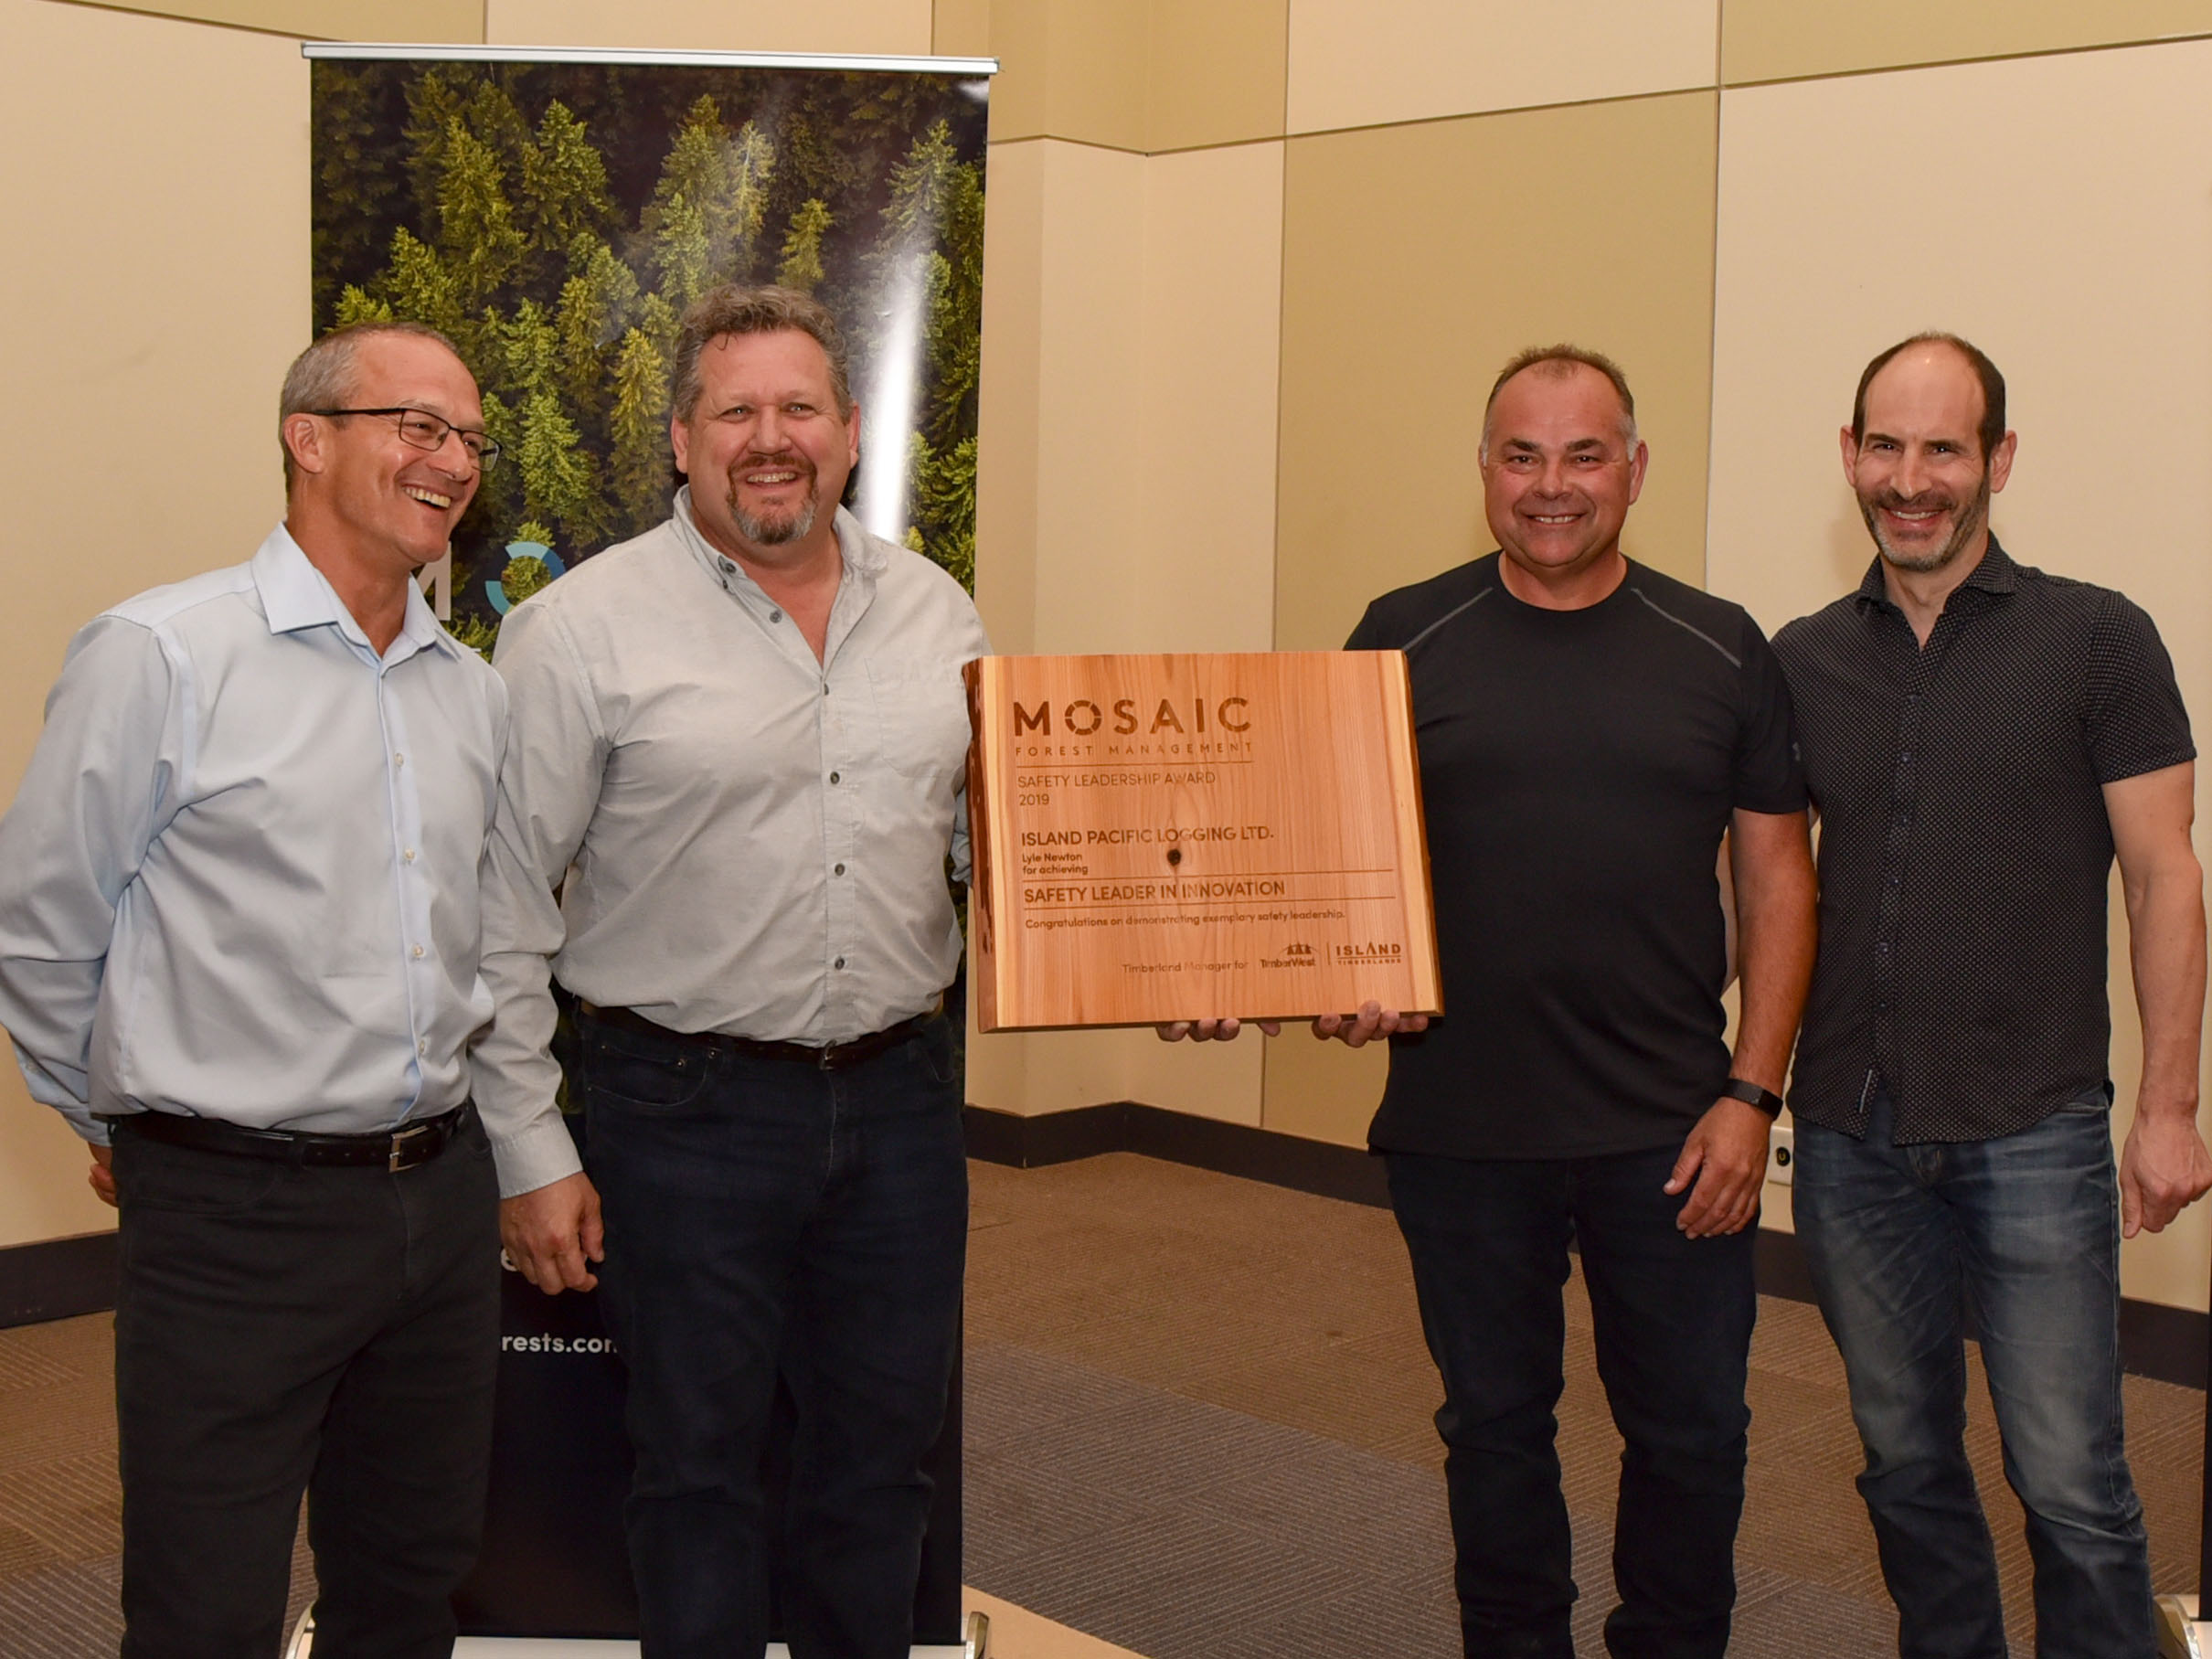 (l to r) Mosaic Forest Management's Director, Health and Safety, John Shearing; Mike Reagon, General Manager, Operations – South Island, Mosaic; Lyle Newton, Island Pacific Logging; and Jeff Zweig, Mosaic's President and Chief Executive Officer.